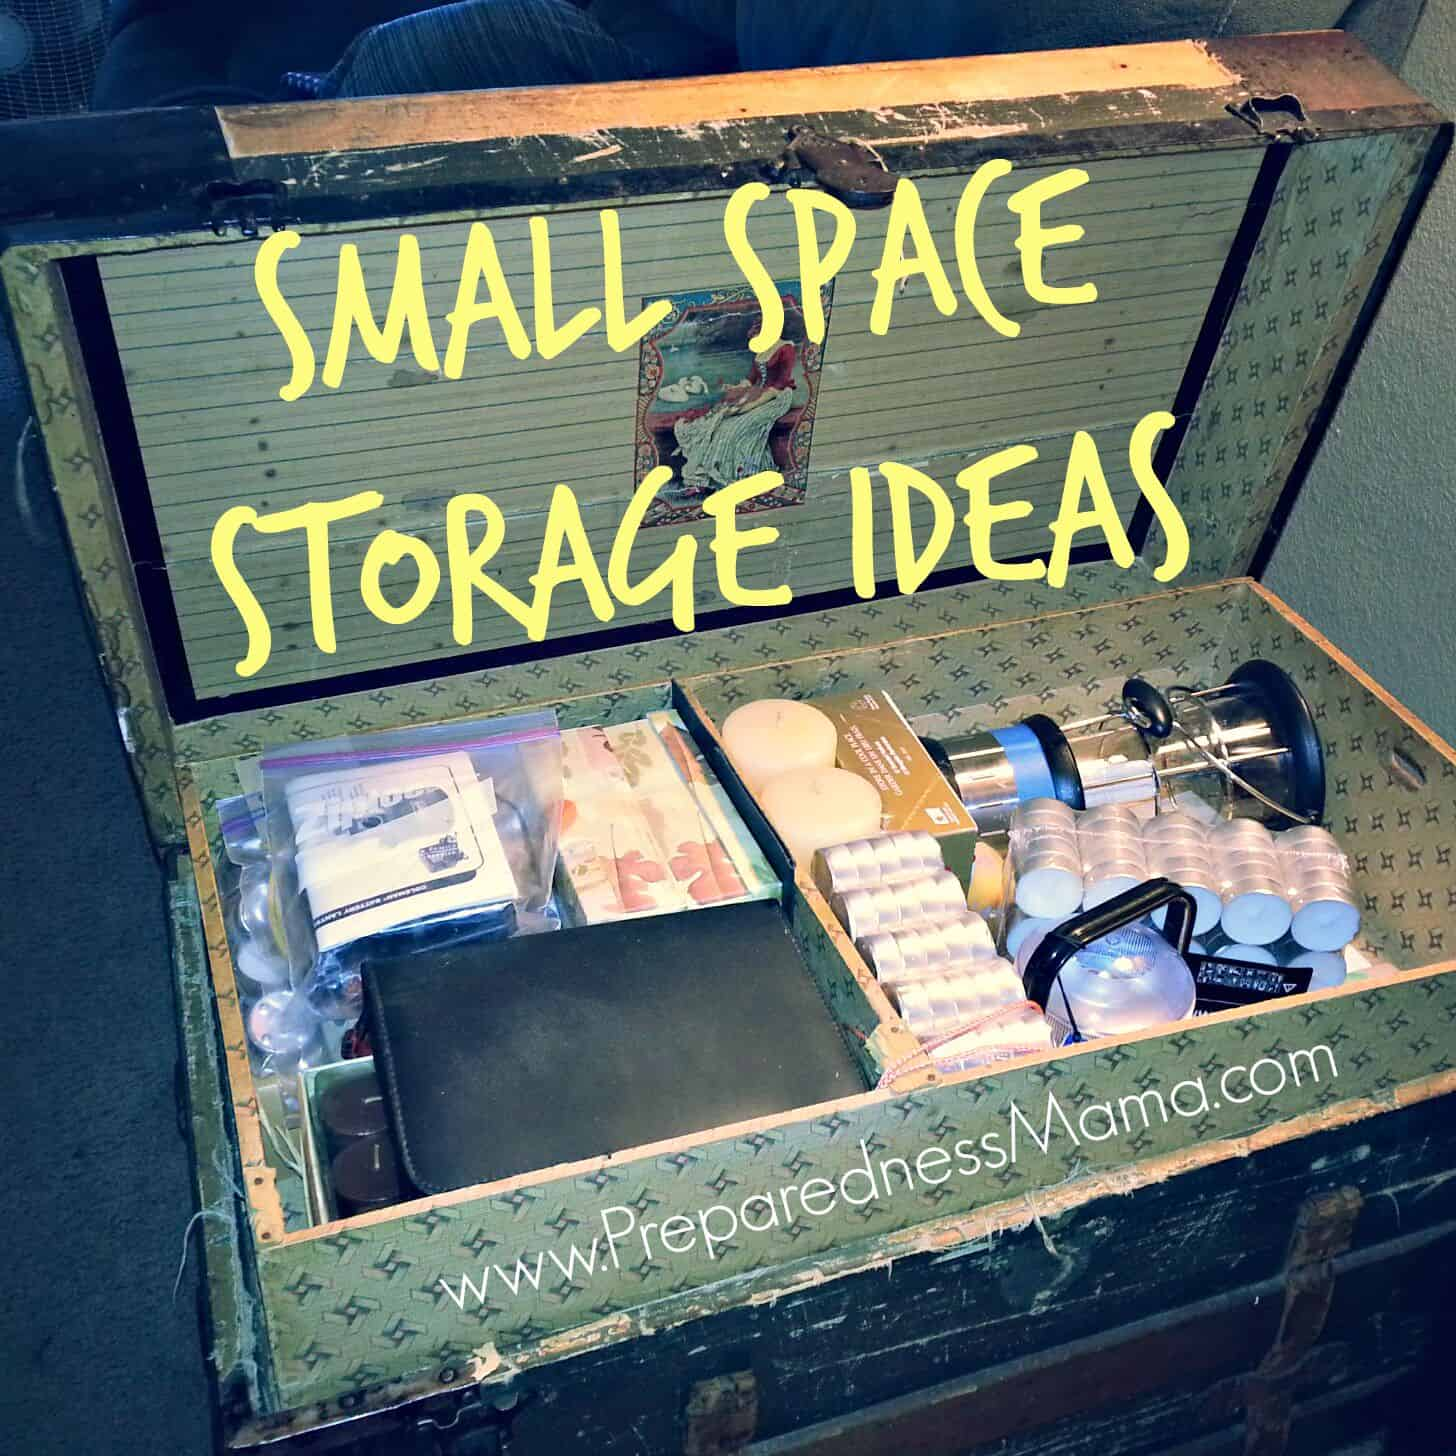 30 creative storage ideas for small spaces. Black Bedroom Furniture Sets. Home Design Ideas